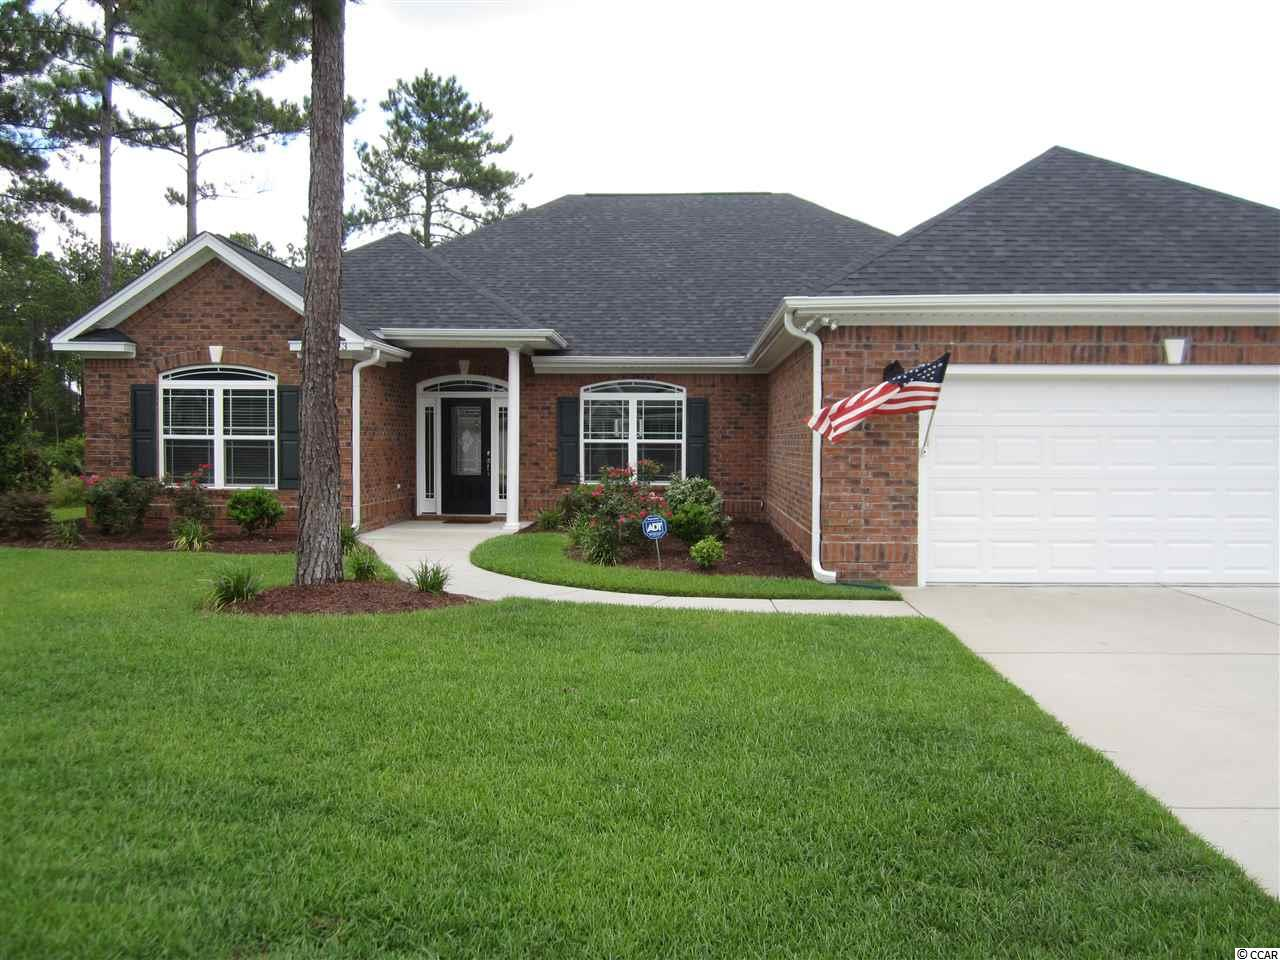 NEW YEAR  - NEW HOME!  REDUCED AND READY TO SELL! This is your chance to own an all brick, custom built home by Tom Wright on a premier lake lot in Covington Lake East.  The entire home was decorated by an interior designer and it shows like a model.  The extra details are apparent upon entering the home with the custom paint, wallpaper, crown molding, upgraded fixtures and plantation blinds.  Eat in Kitchen has custom maple cabinets, stainless steel appliances and granite countertops. Foyer, Dining Room and Living room have hardwood floors.  500 lb in ground propane tank for the fireplace and gas grill.  Enjoy outdoor living on the back 12 x 12 screen porch.  The bonus room behind the French doors can be used for a dining room but would make a fantastic office.  Laundry room leads to a 2 car garage with side access door.  Sprinkler system in the well maintained yard.  Covington Lake East is a gated community and has a community pool.  Measurements are approximate, Buyer to verify.